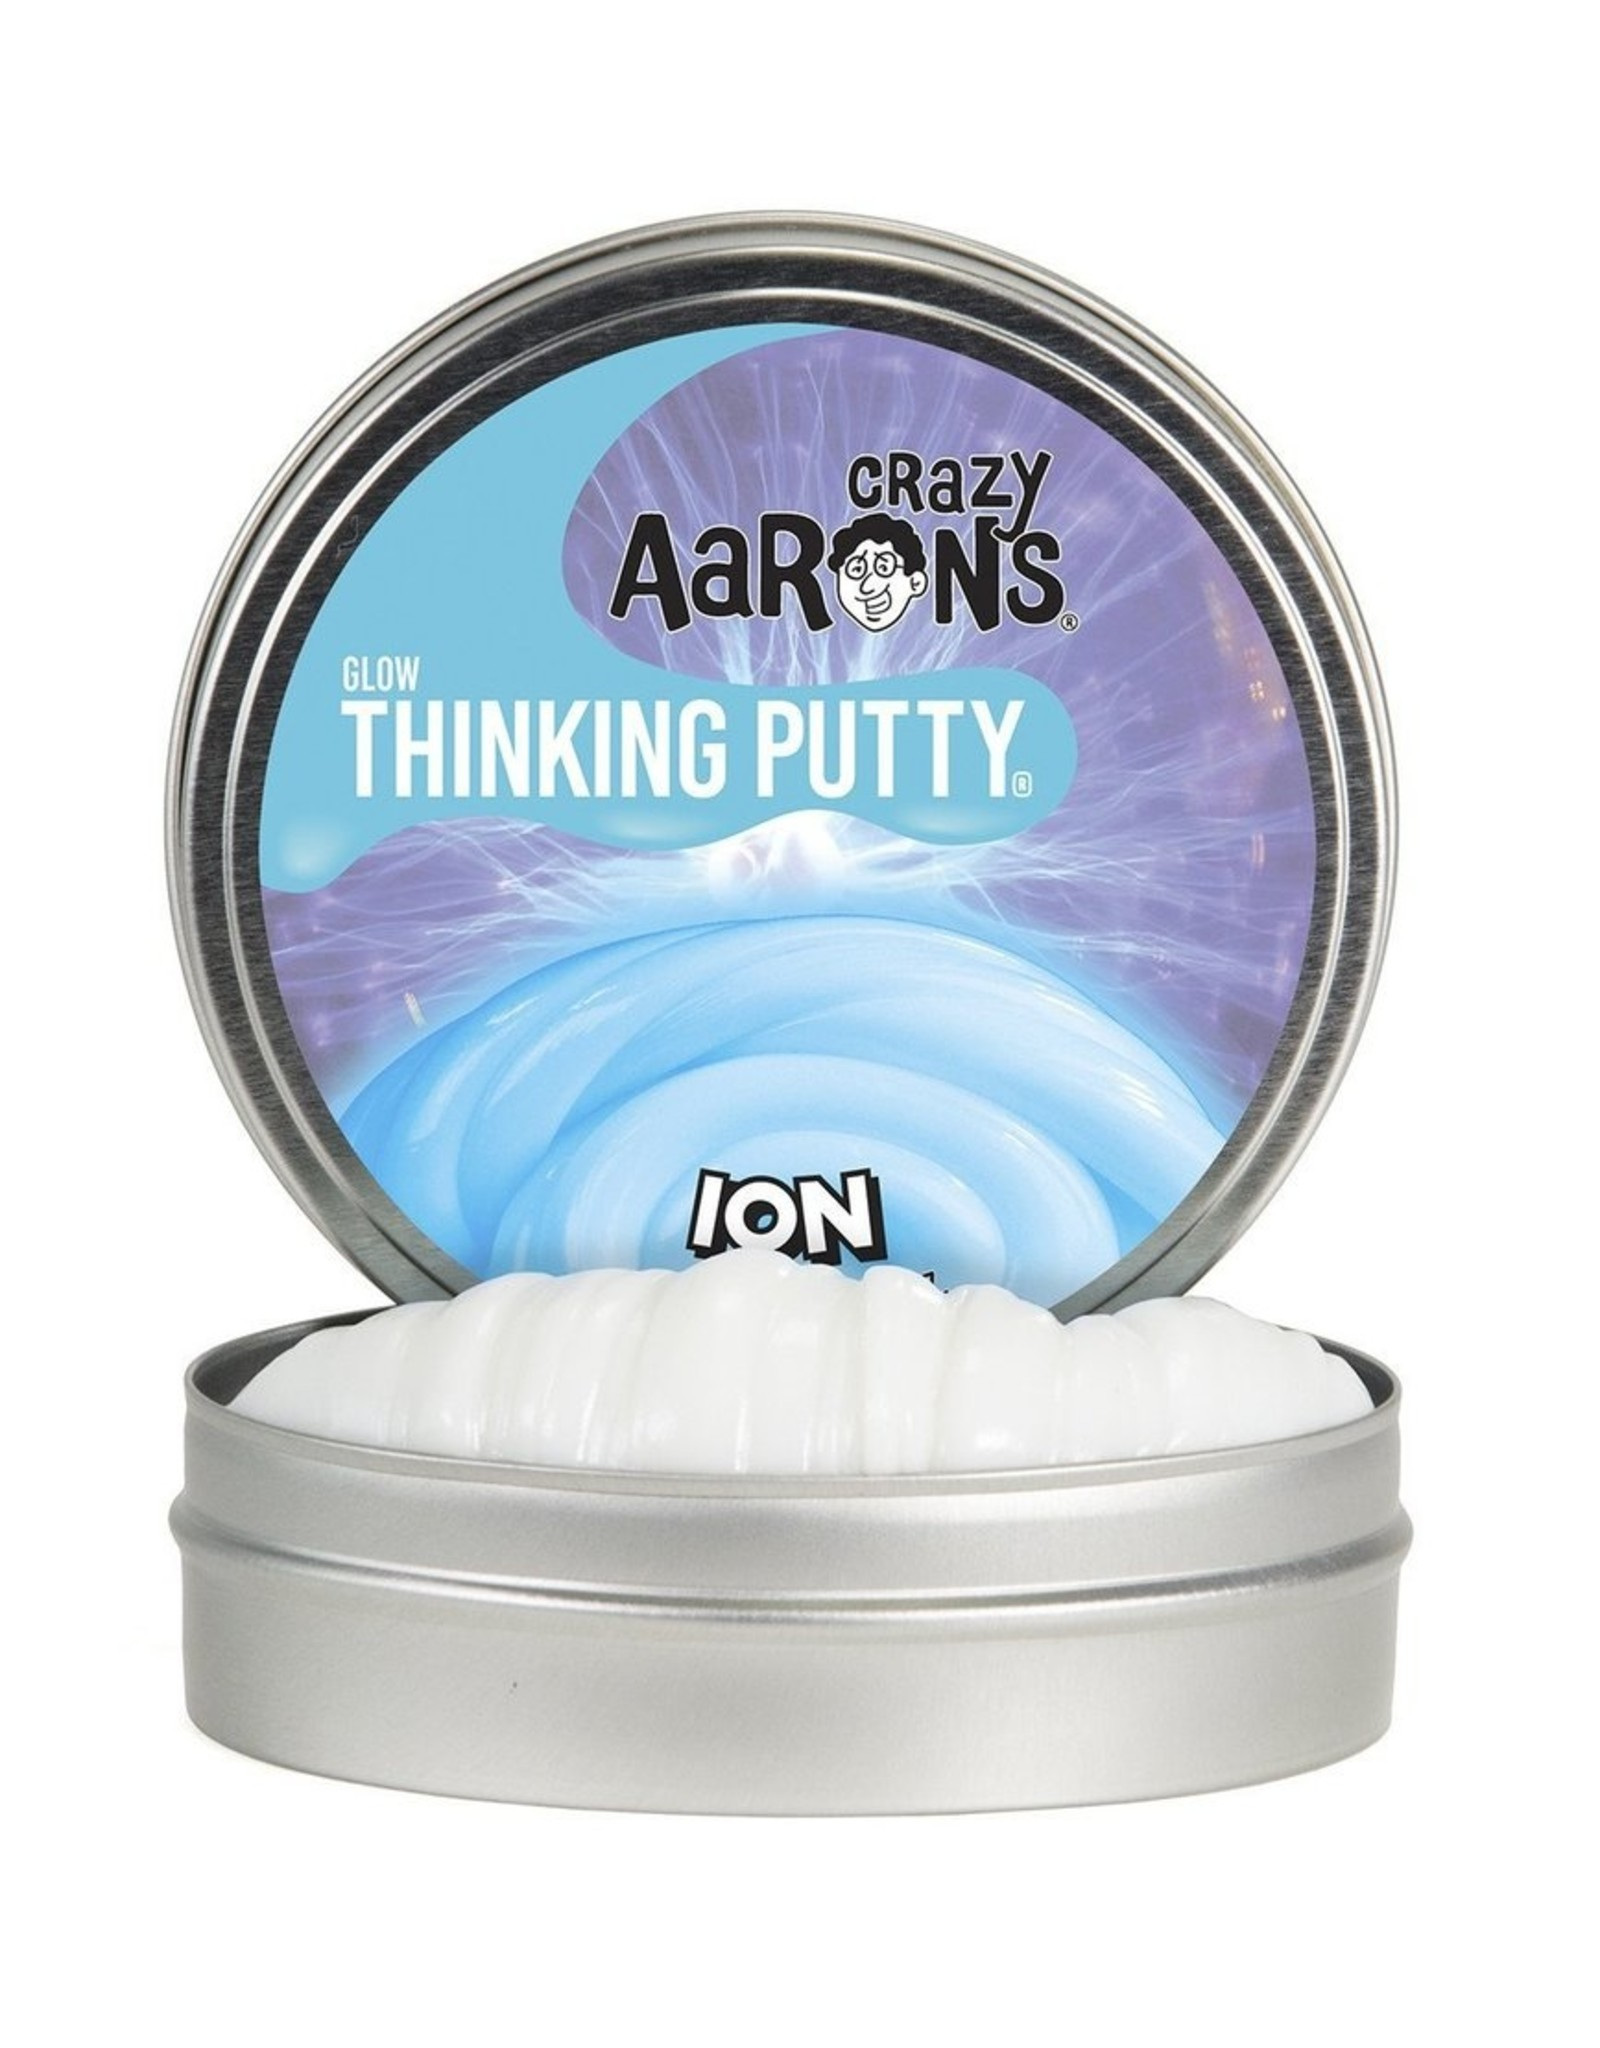 Crazy Aarons 3.2 oz - Ion Thinking Putty